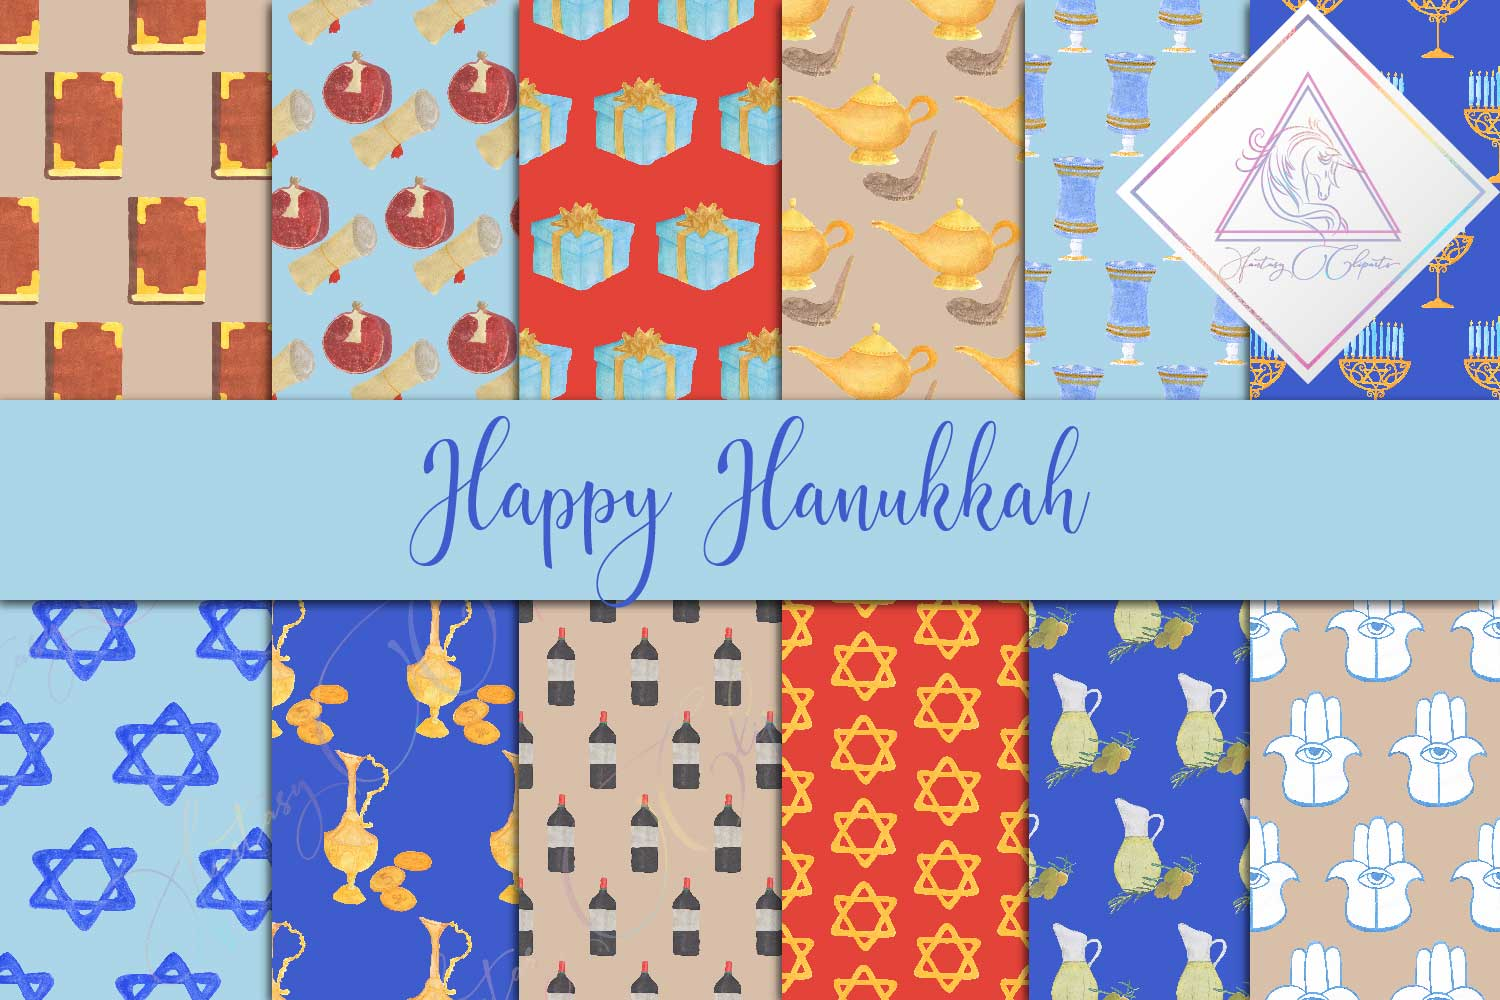 Download Free Happy Hanukkah Digital Paper Graphic By Fantasycliparts for Cricut Explore, Silhouette and other cutting machines.